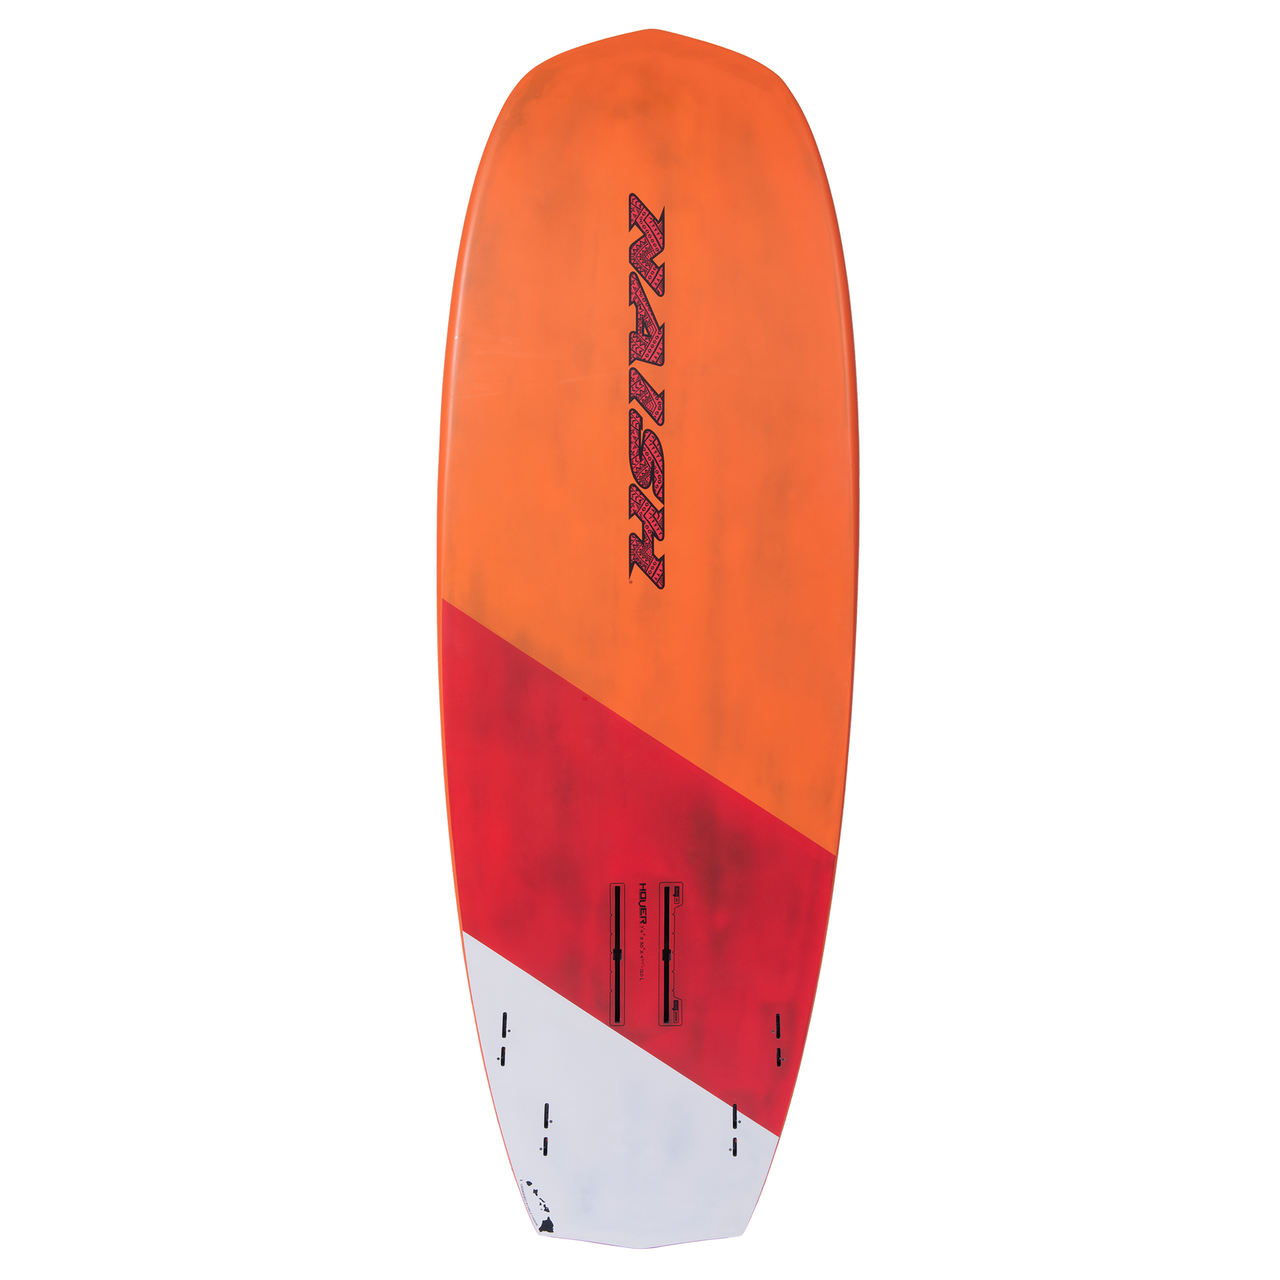 S25 Hover SUP 140 (GA-SUP1-S25HS140)